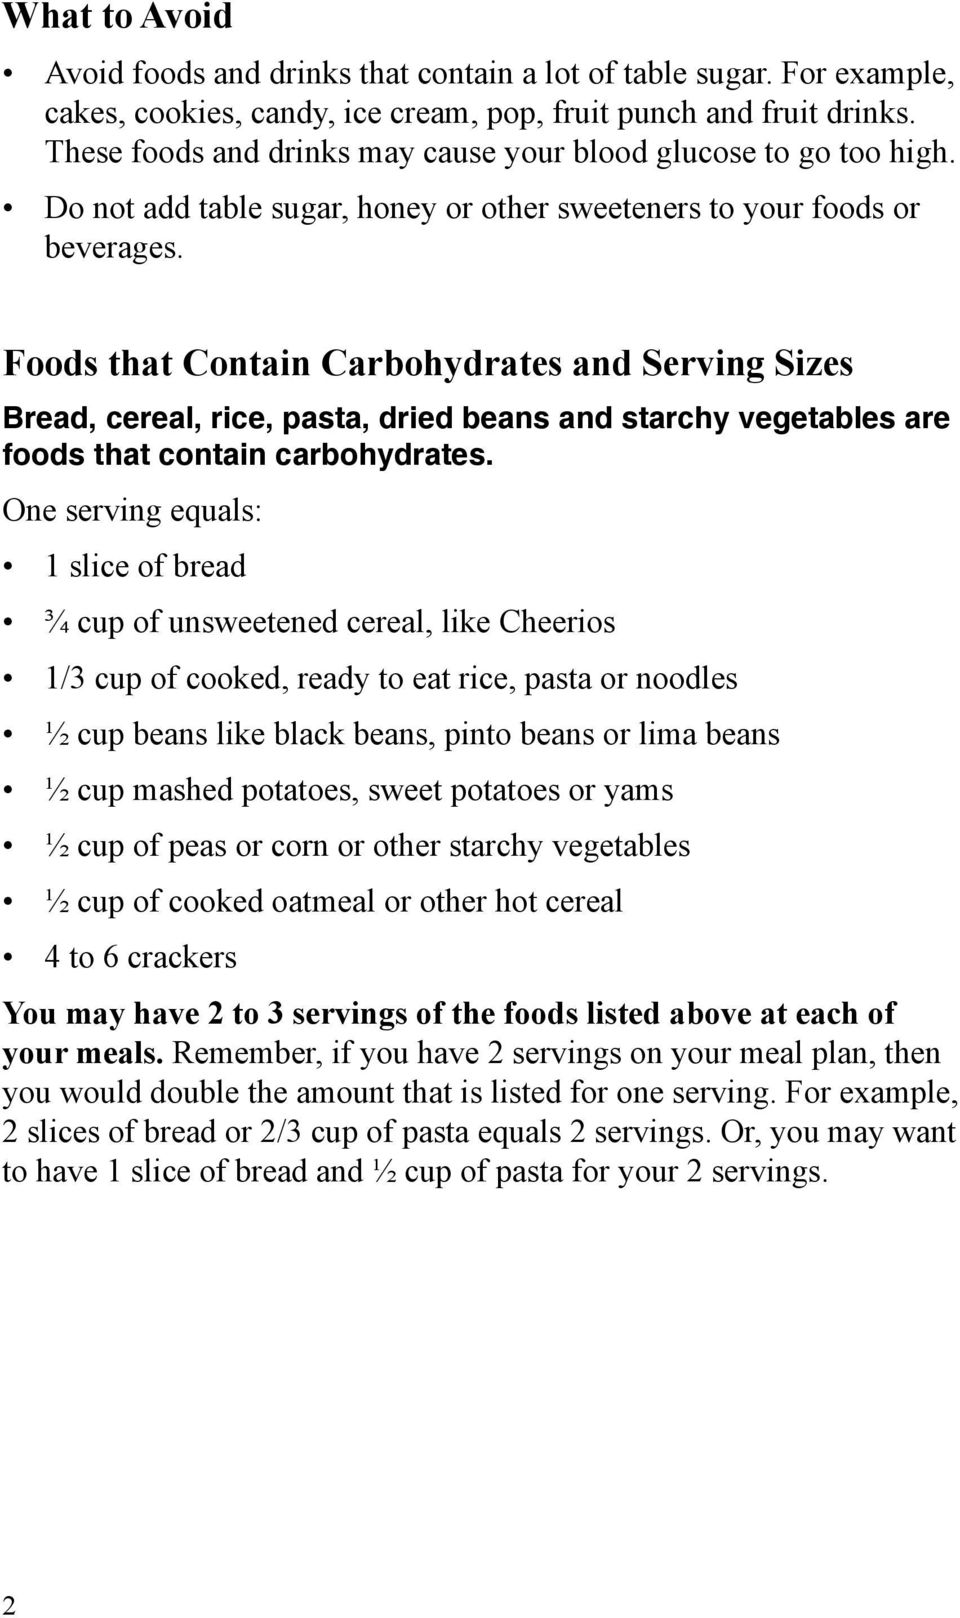 Foods that Contain Carbohydrates and Serving Sizes Bread, cereal, rice, pasta, dried beans and starchy vegetables are foods that contain carbohydrates.